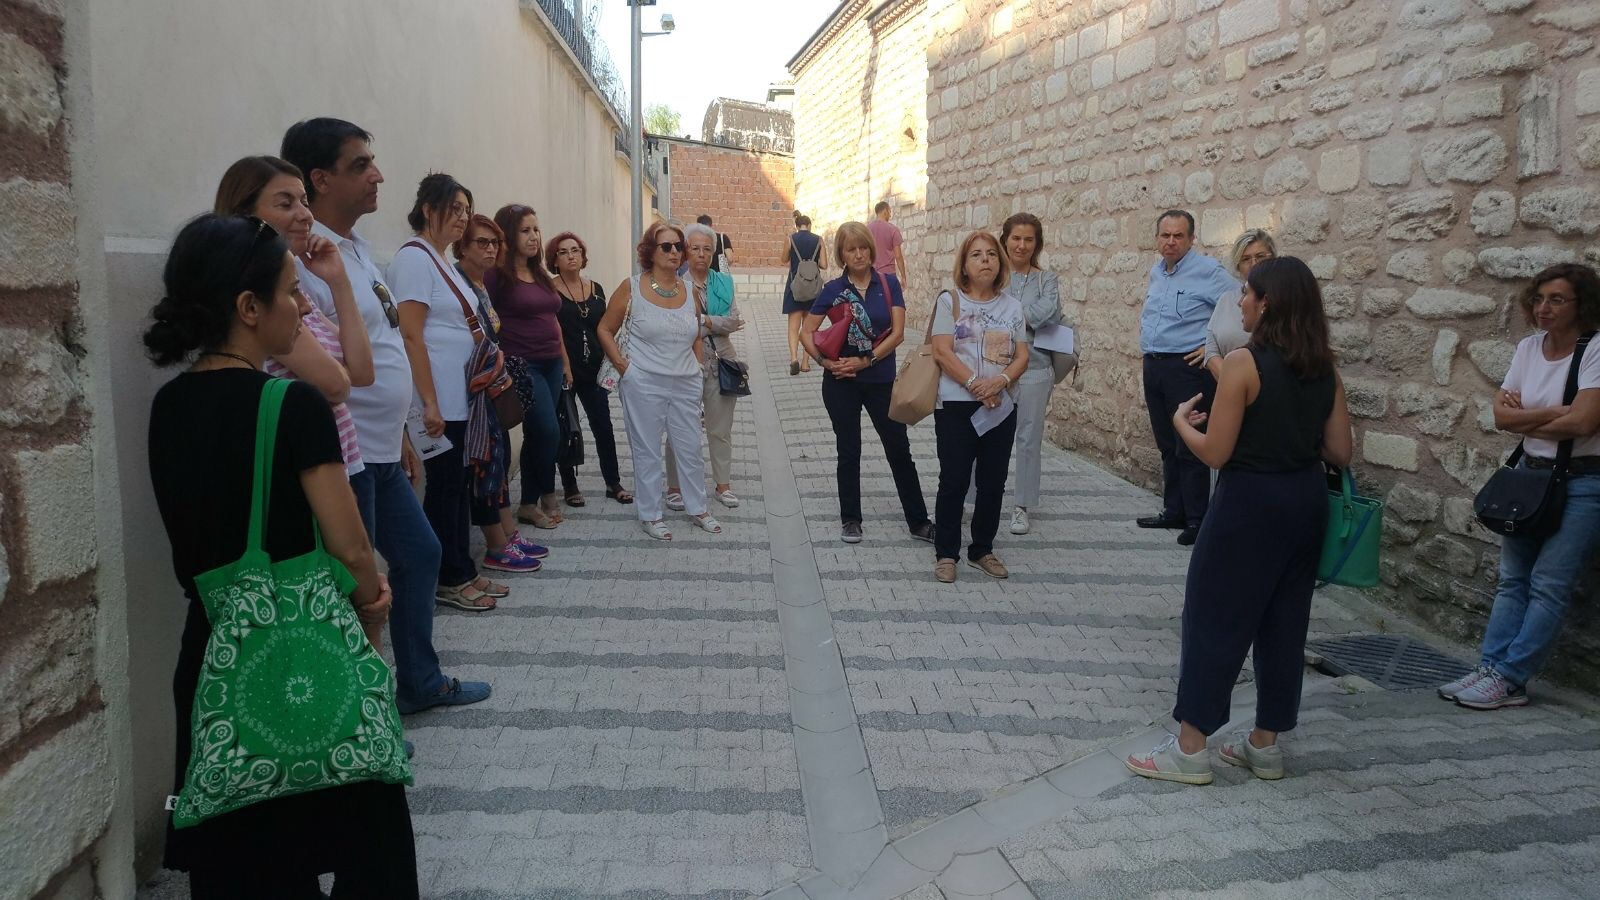 Artwalk group gathered in the garden of Küçük Mustafa Paşa Hamamı in old İstanbul to explore 15th İstanbul Biennial